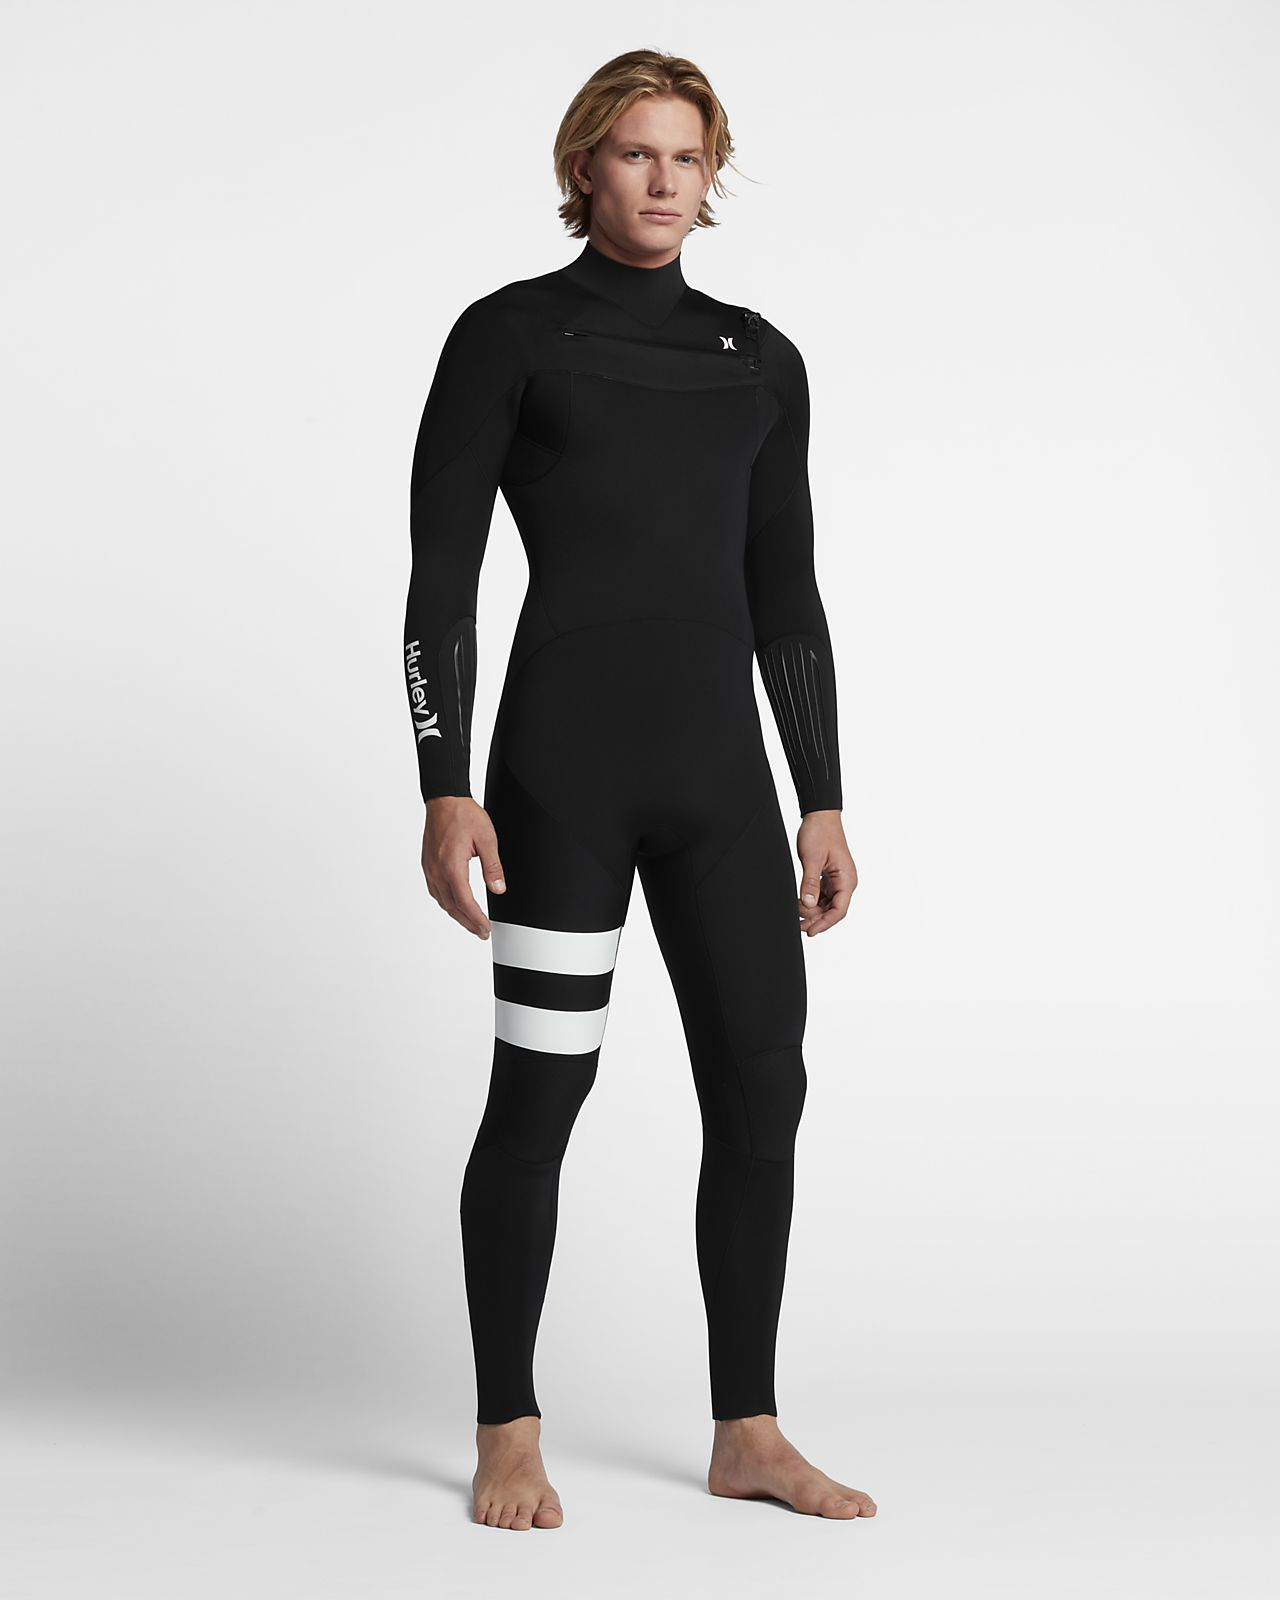 Hurley Advantage Elite 3/3mm Fullsuit Men's Wetsuit